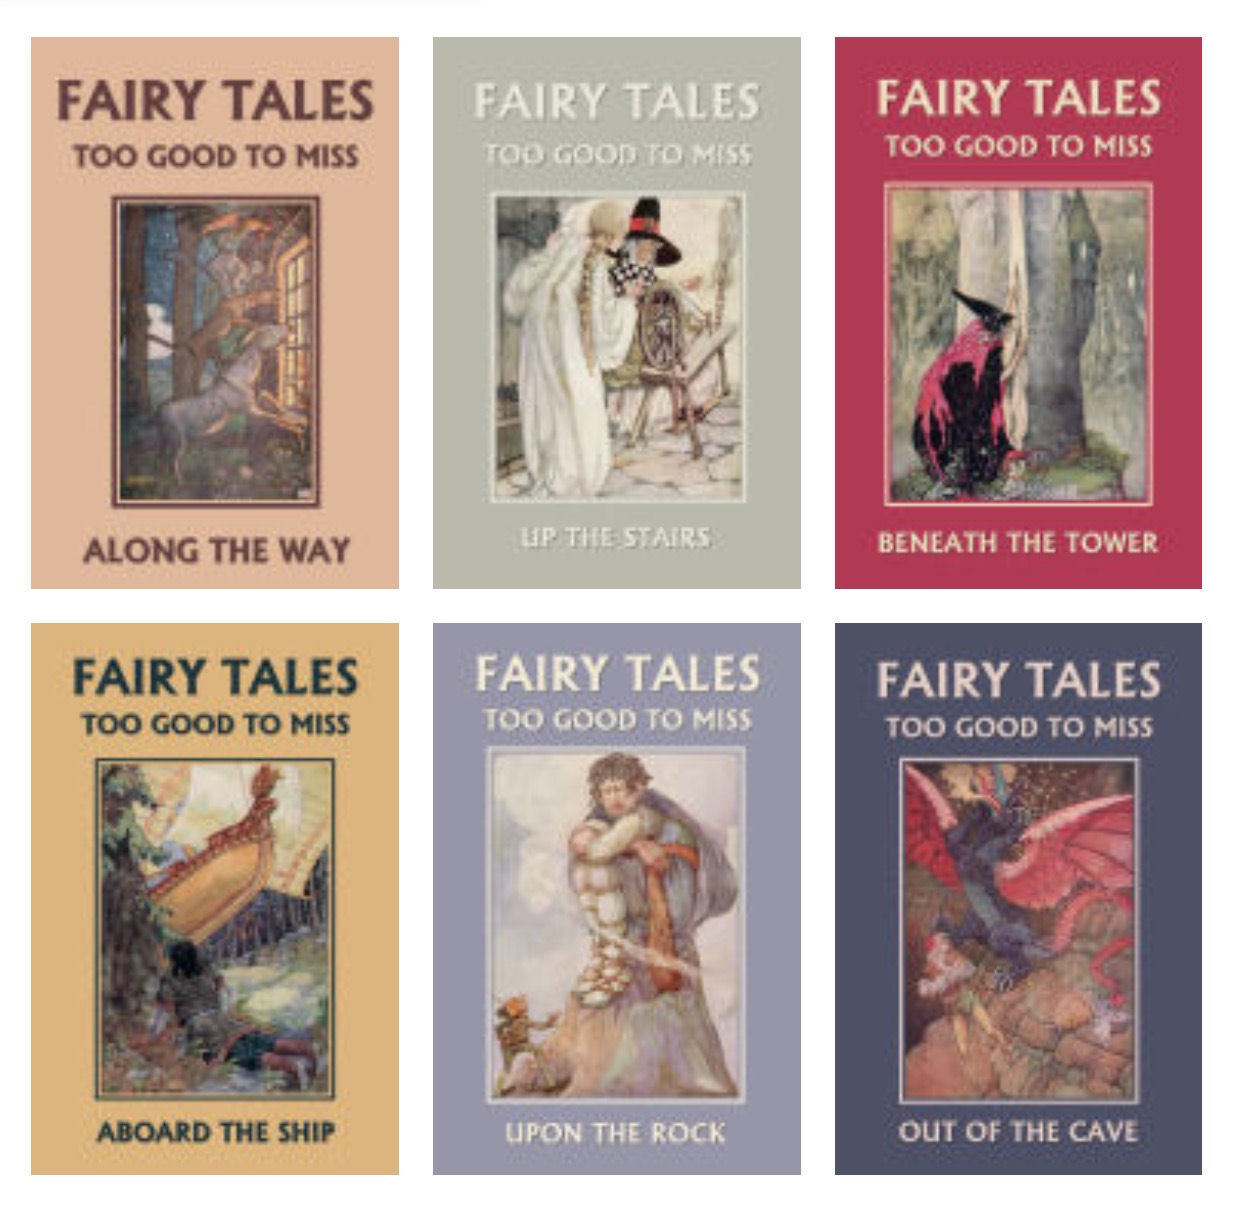 Fairy Tales Archives - A Culture of Reading